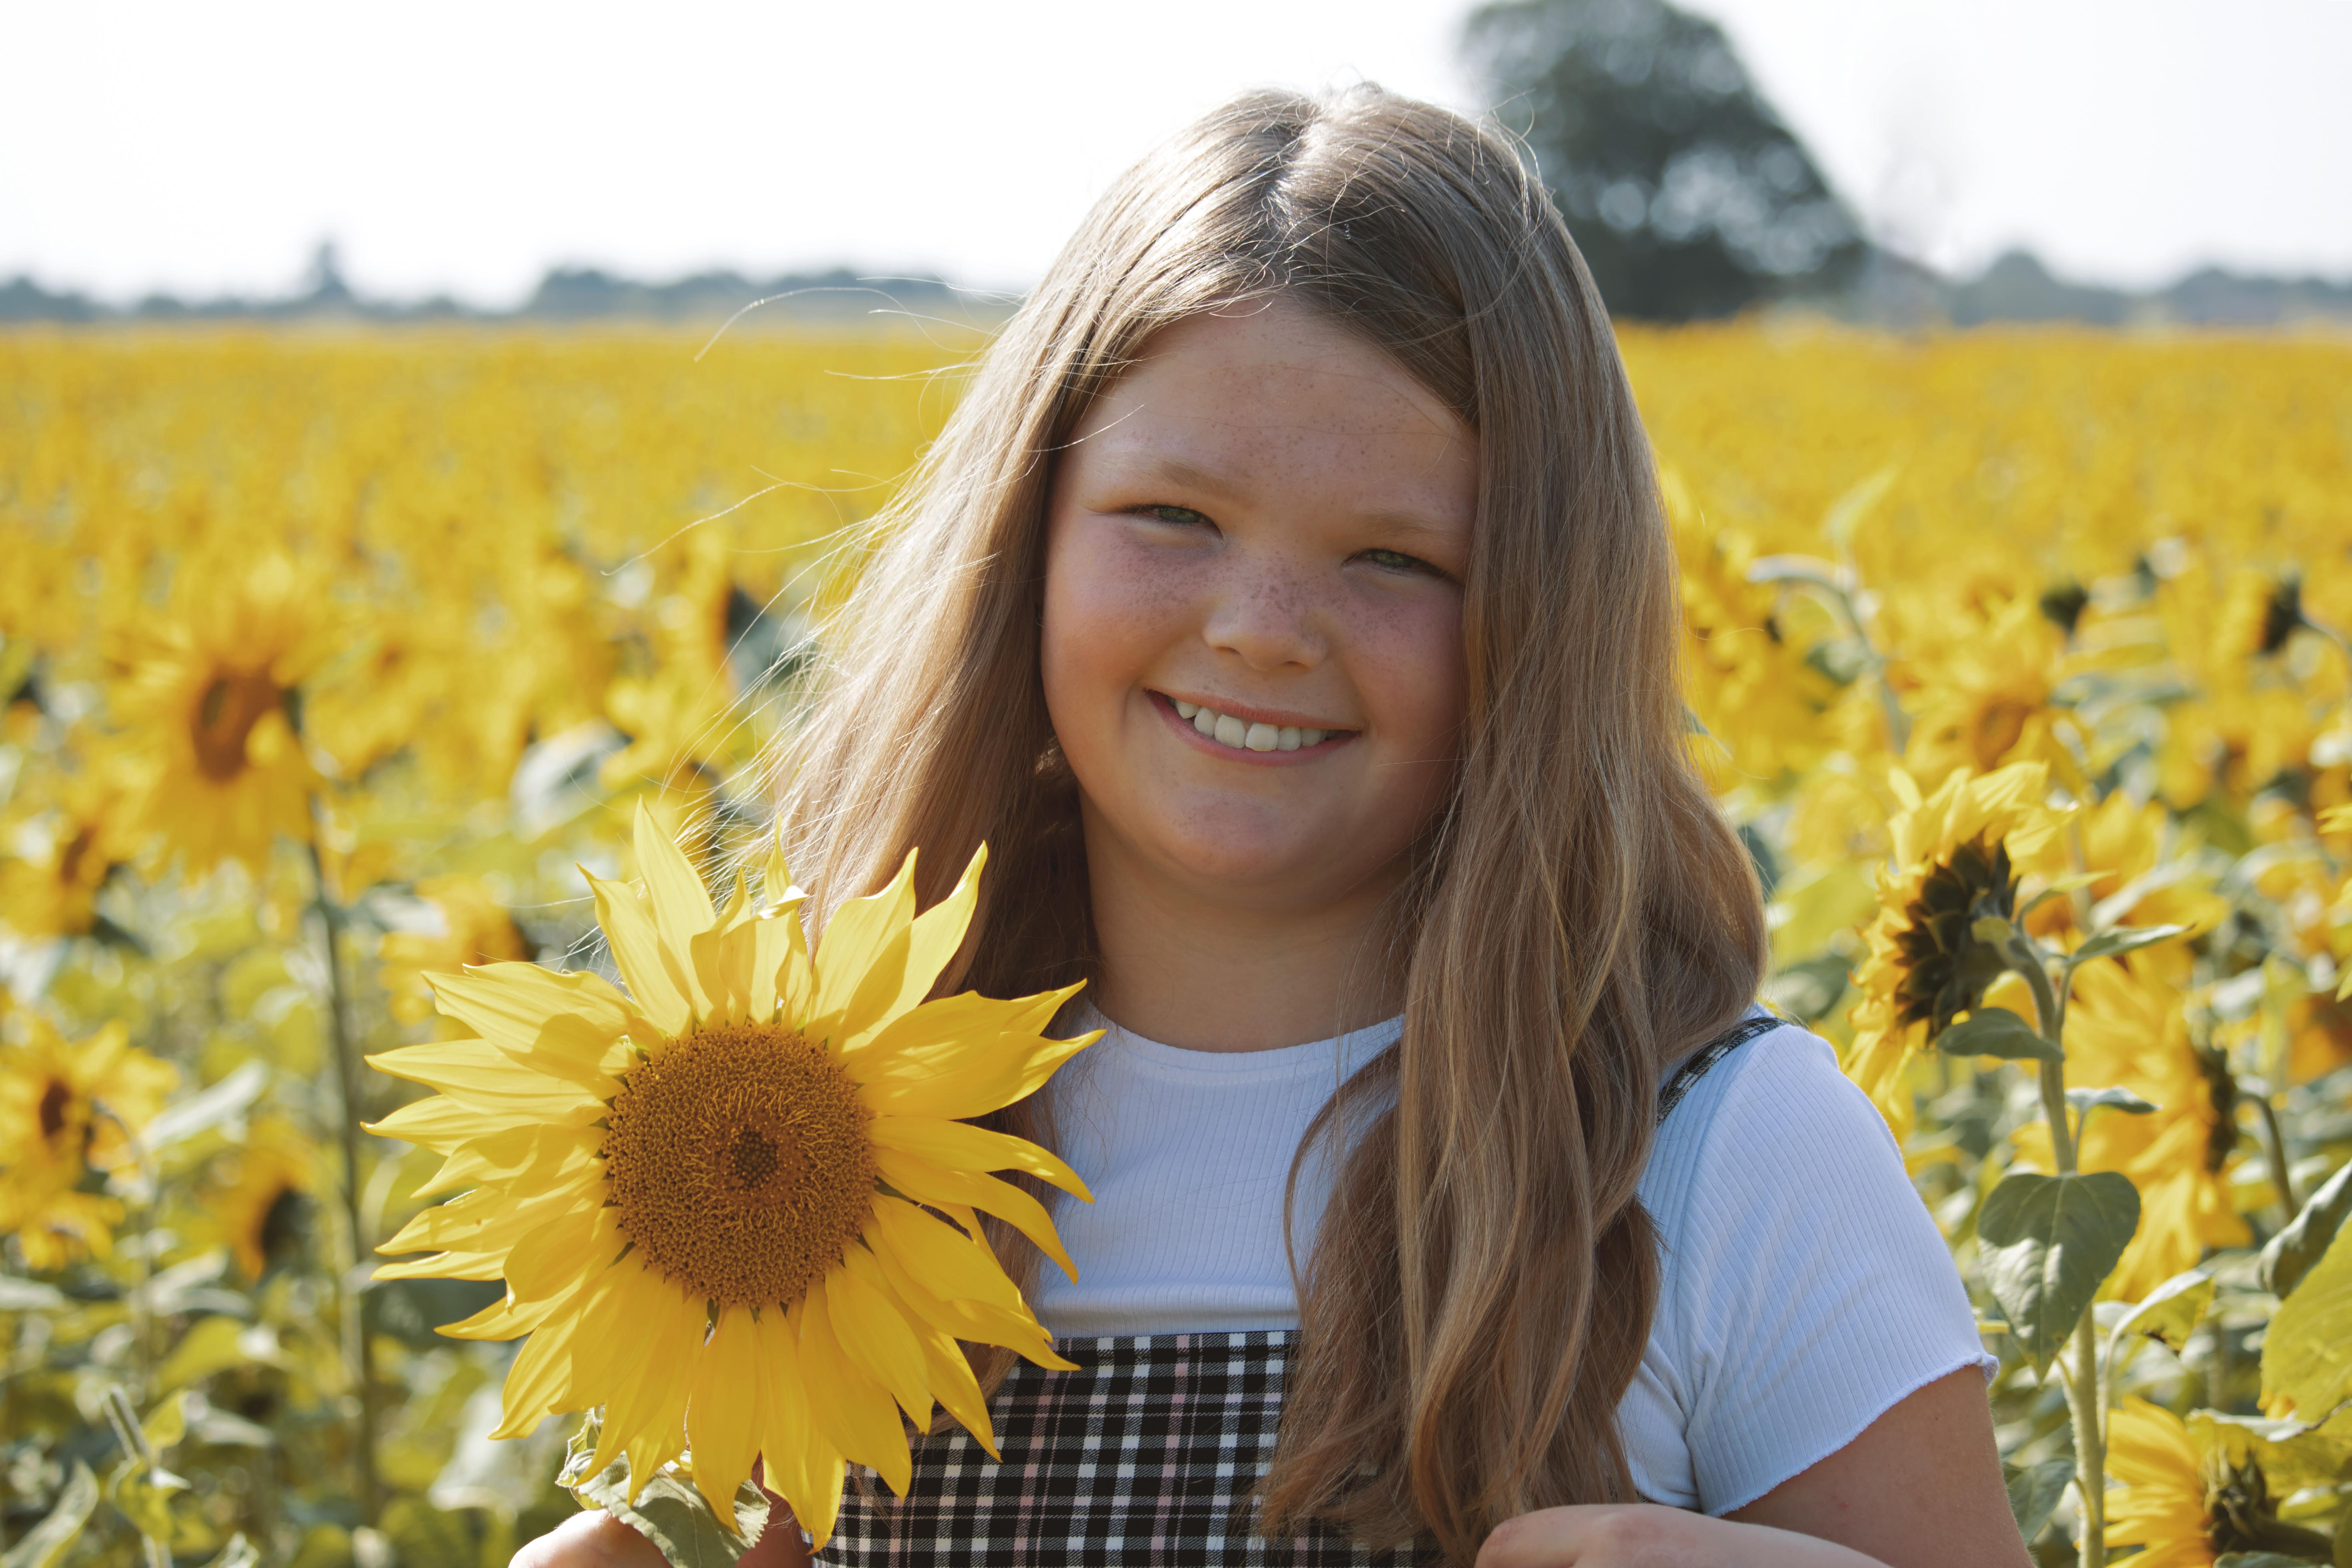 Relaxed Family Photoshoot at the Sunflowers